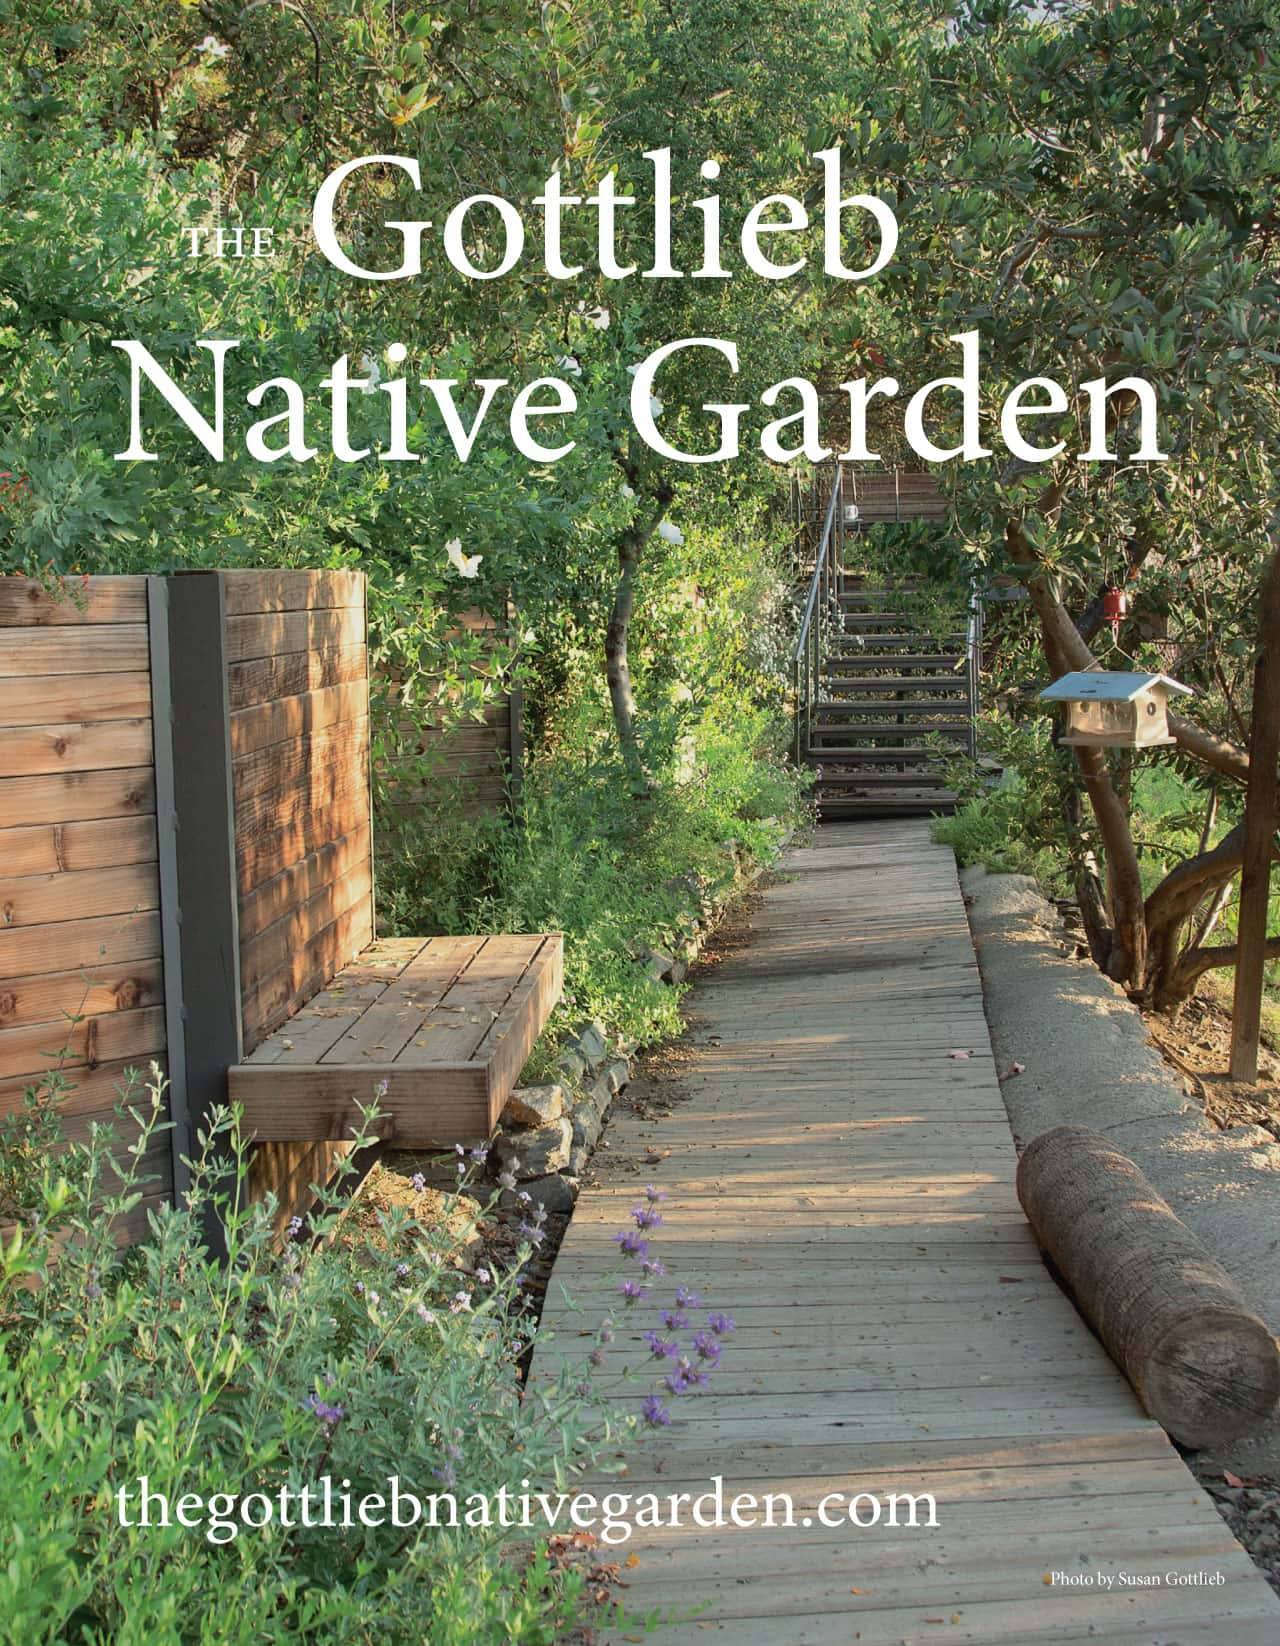 Gottlieb Native Garden